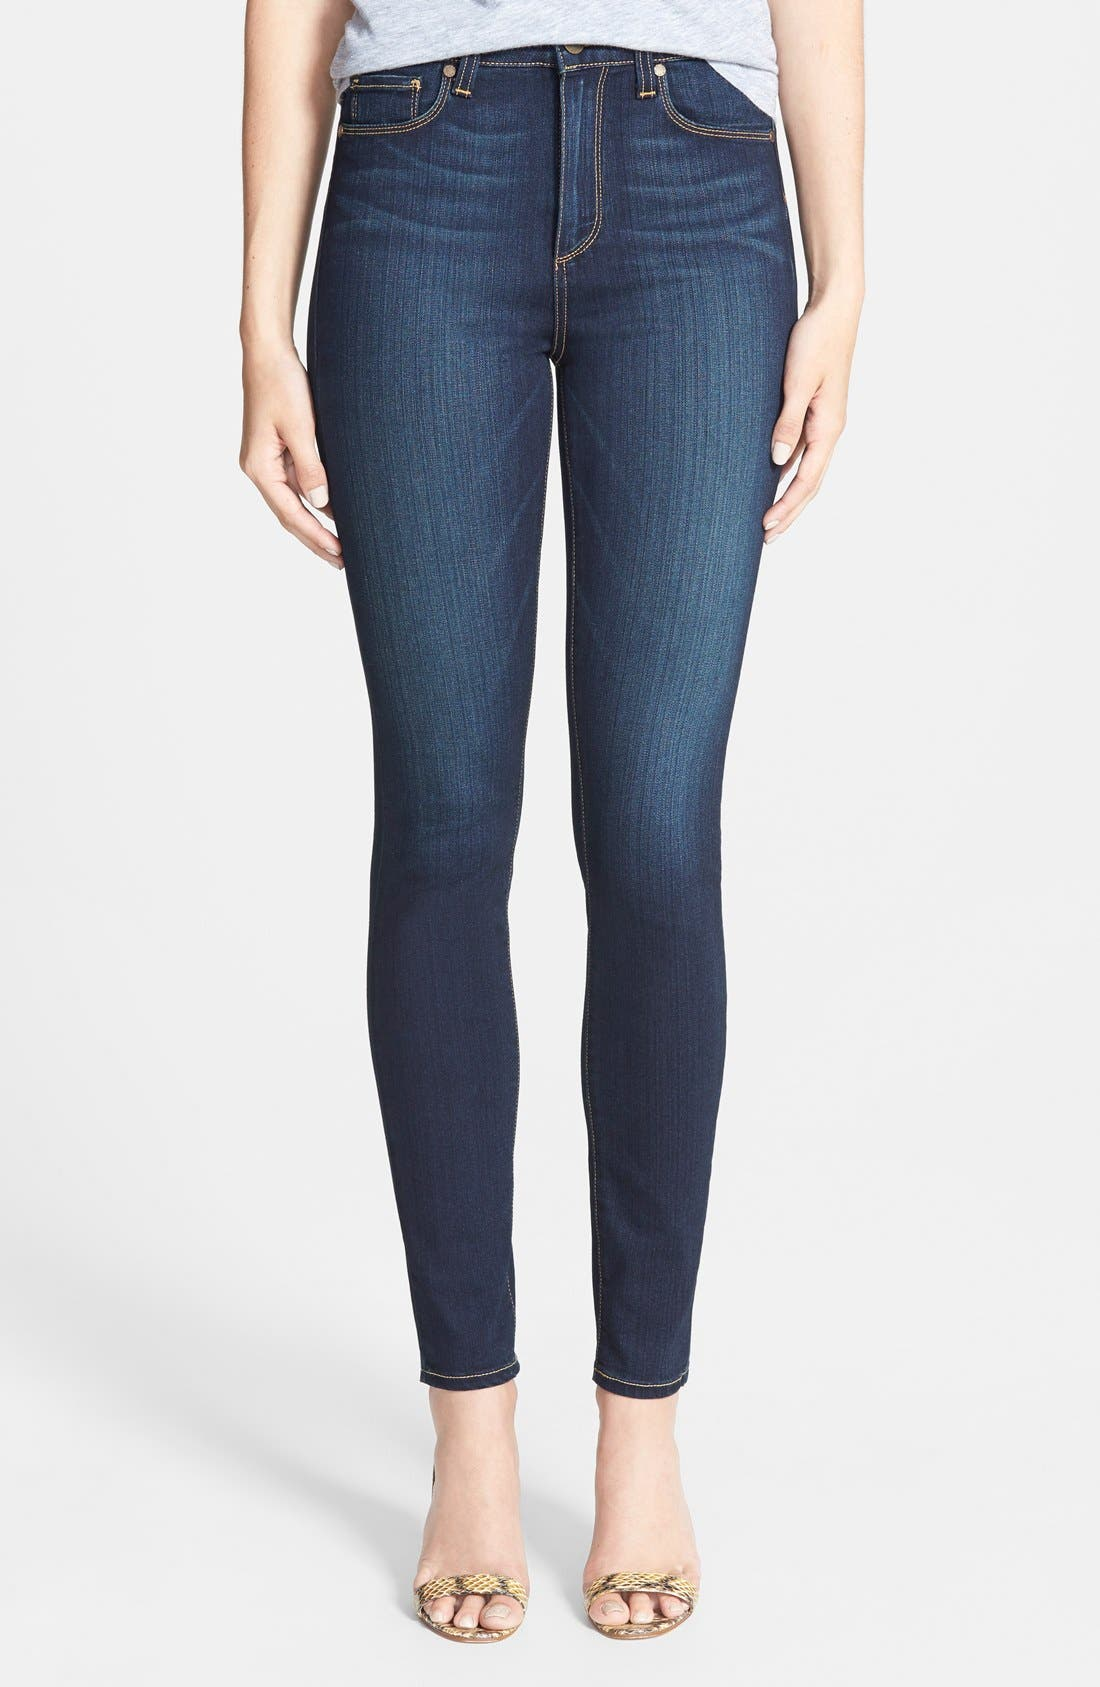 PAIGE, 'Transcend - Margot' High Rise Ultra Skinny Stretch Jeans, Main thumbnail 1, color, 400